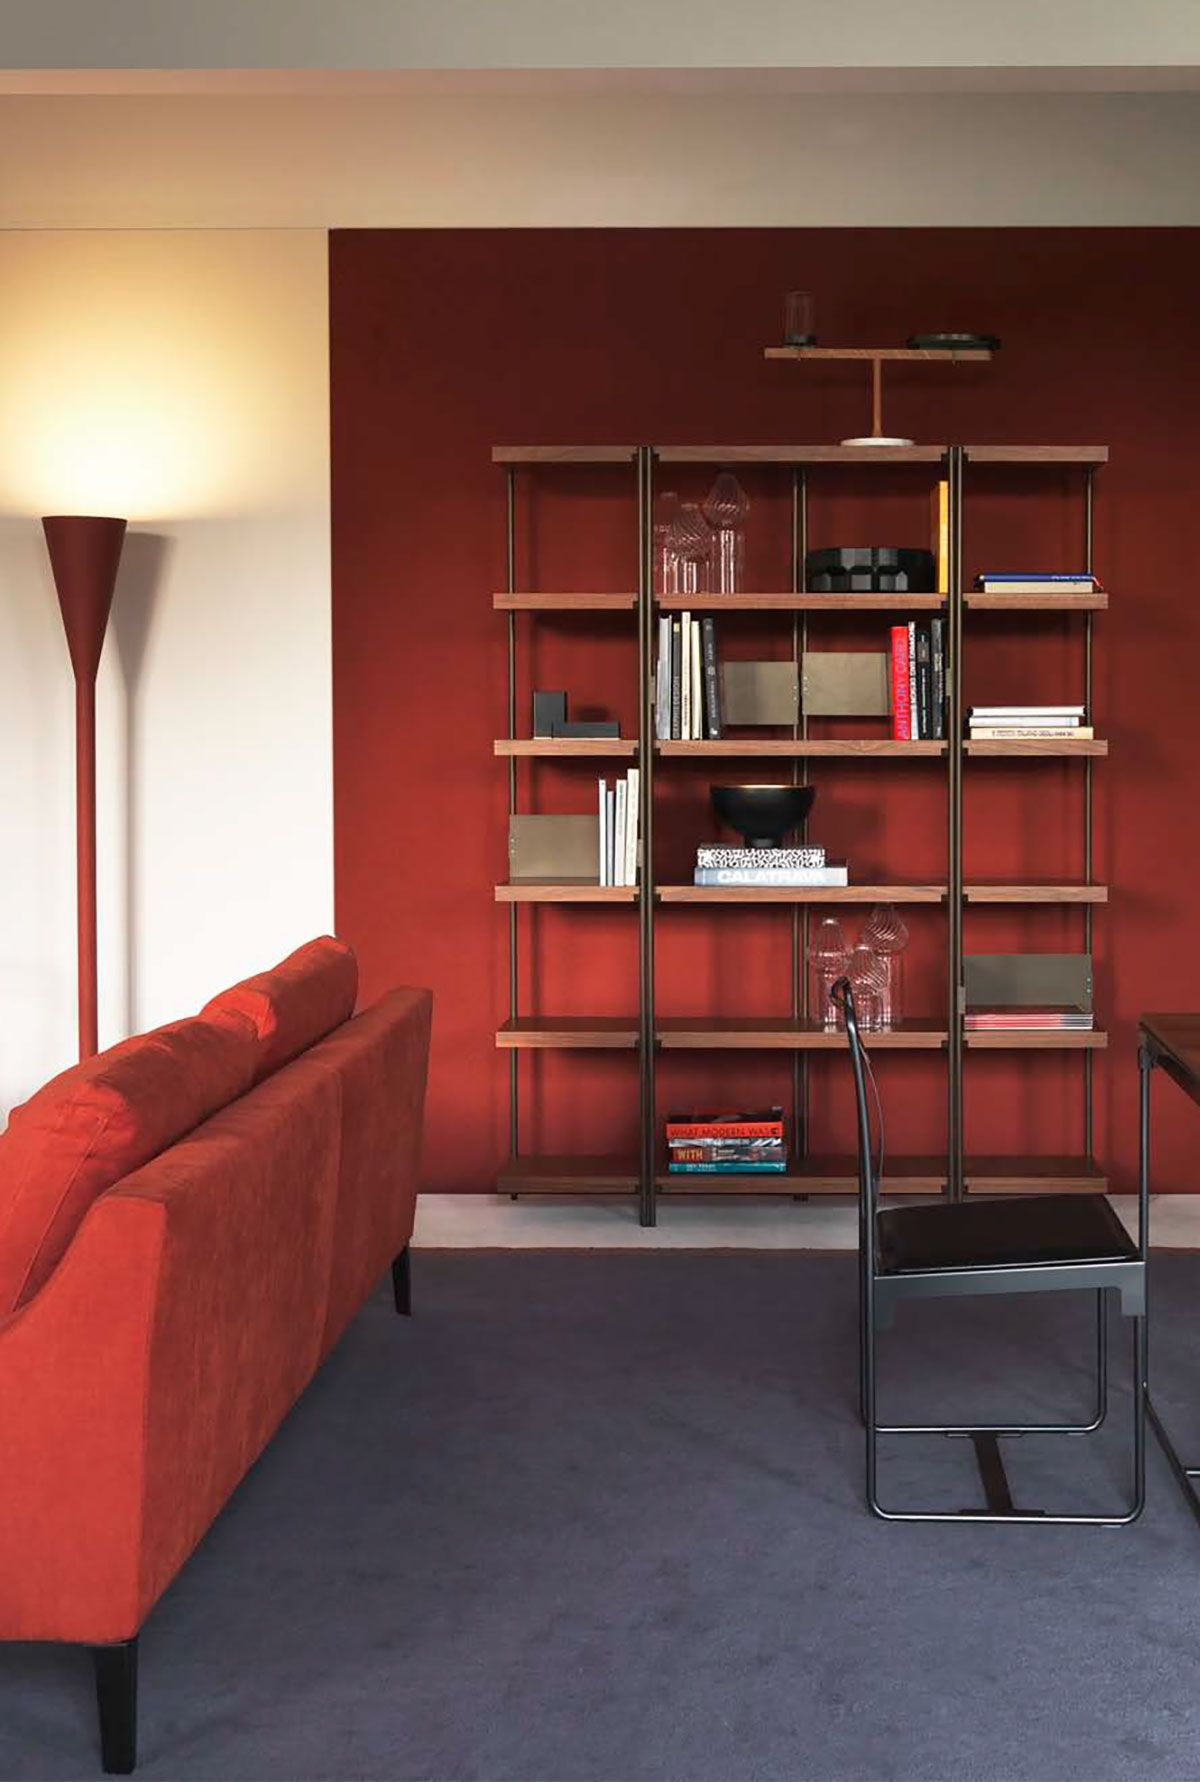 Zigzag Bookcase Designed By Konstantin Grcic For Driade